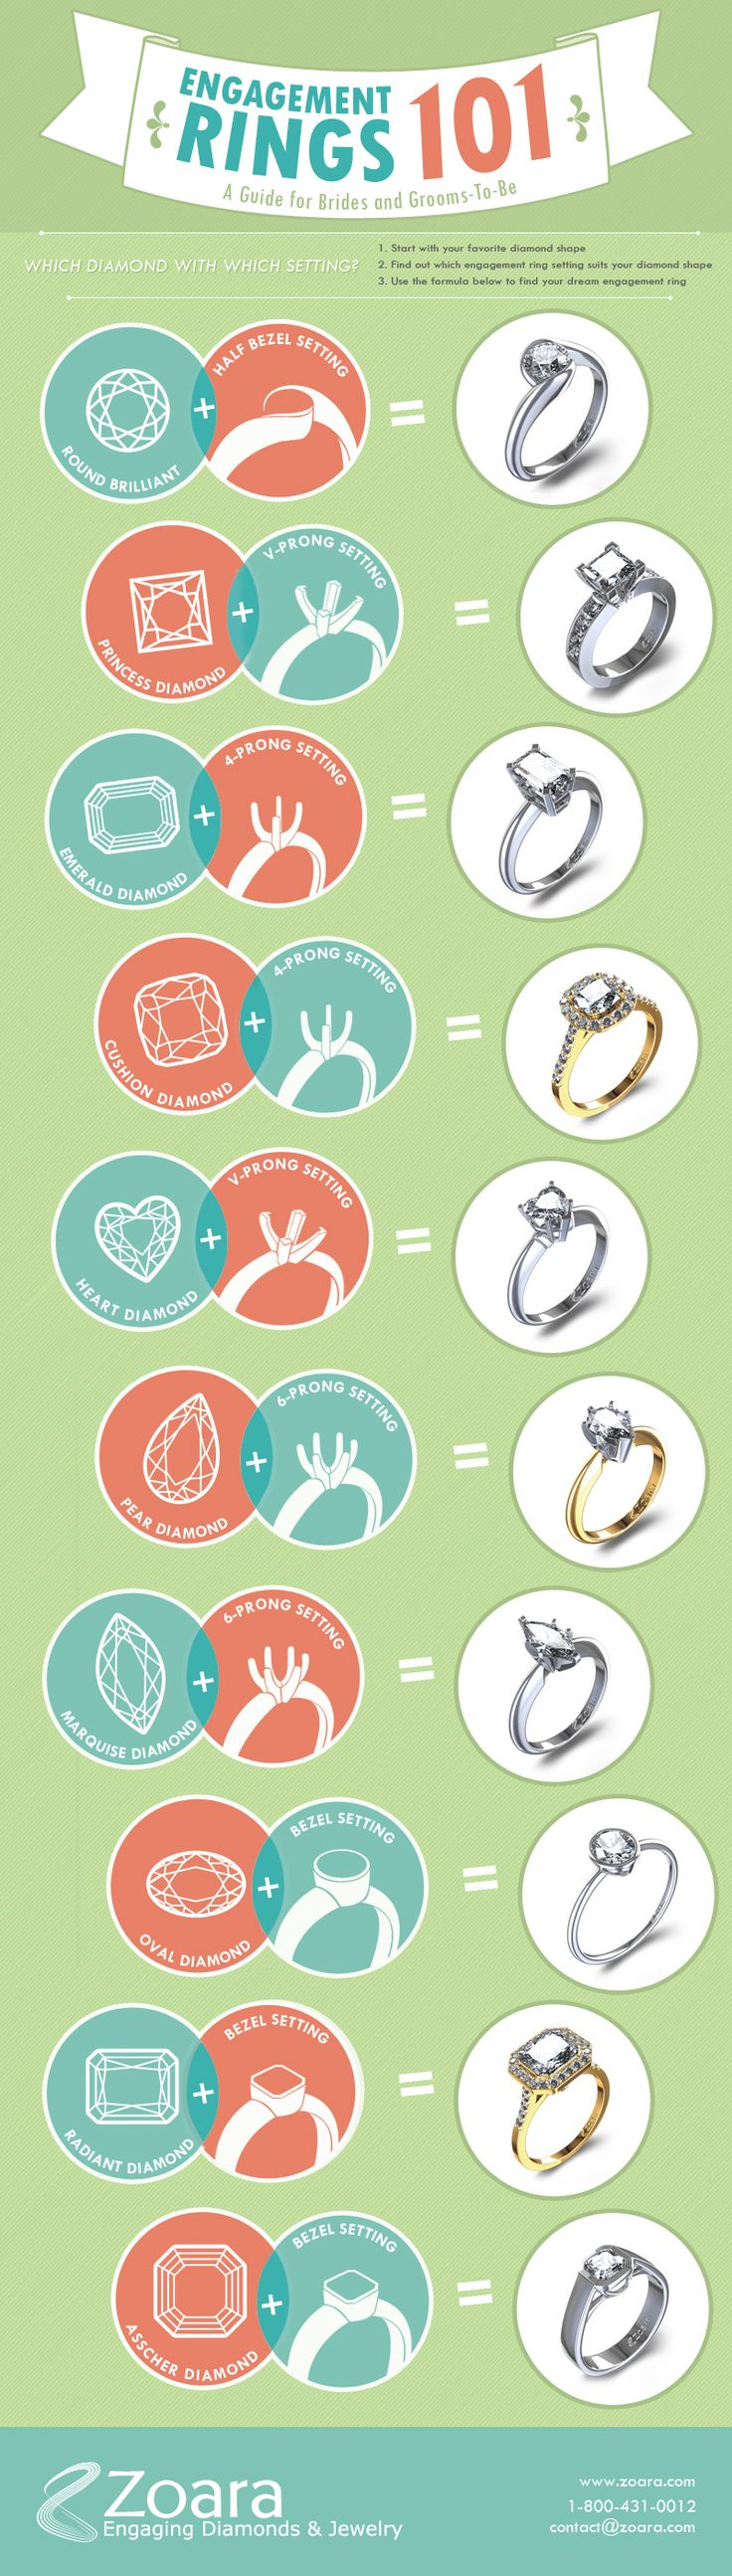 Take A Look At This Great Engagement Ringsgraphic – Finally An  Opportunity To Learn Which